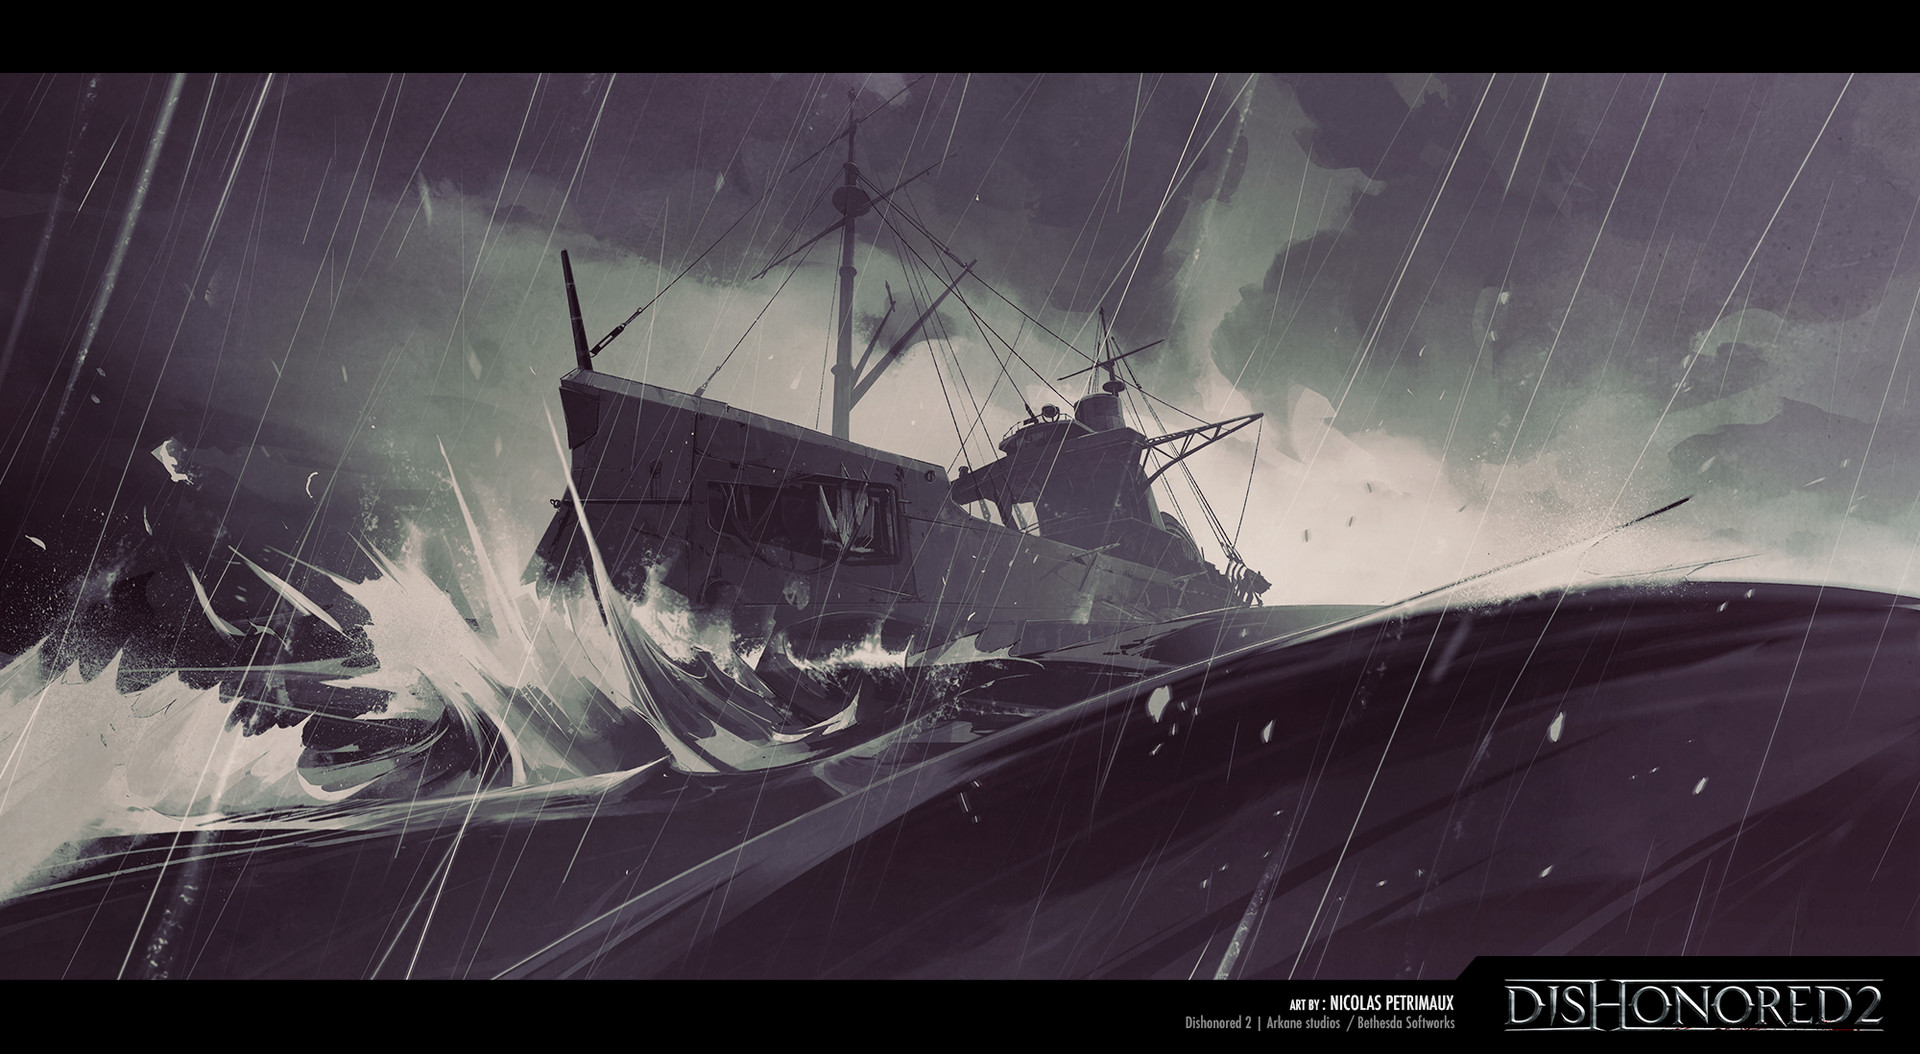 Dishonored 2 Concept Art by Nicolas Petrimaux